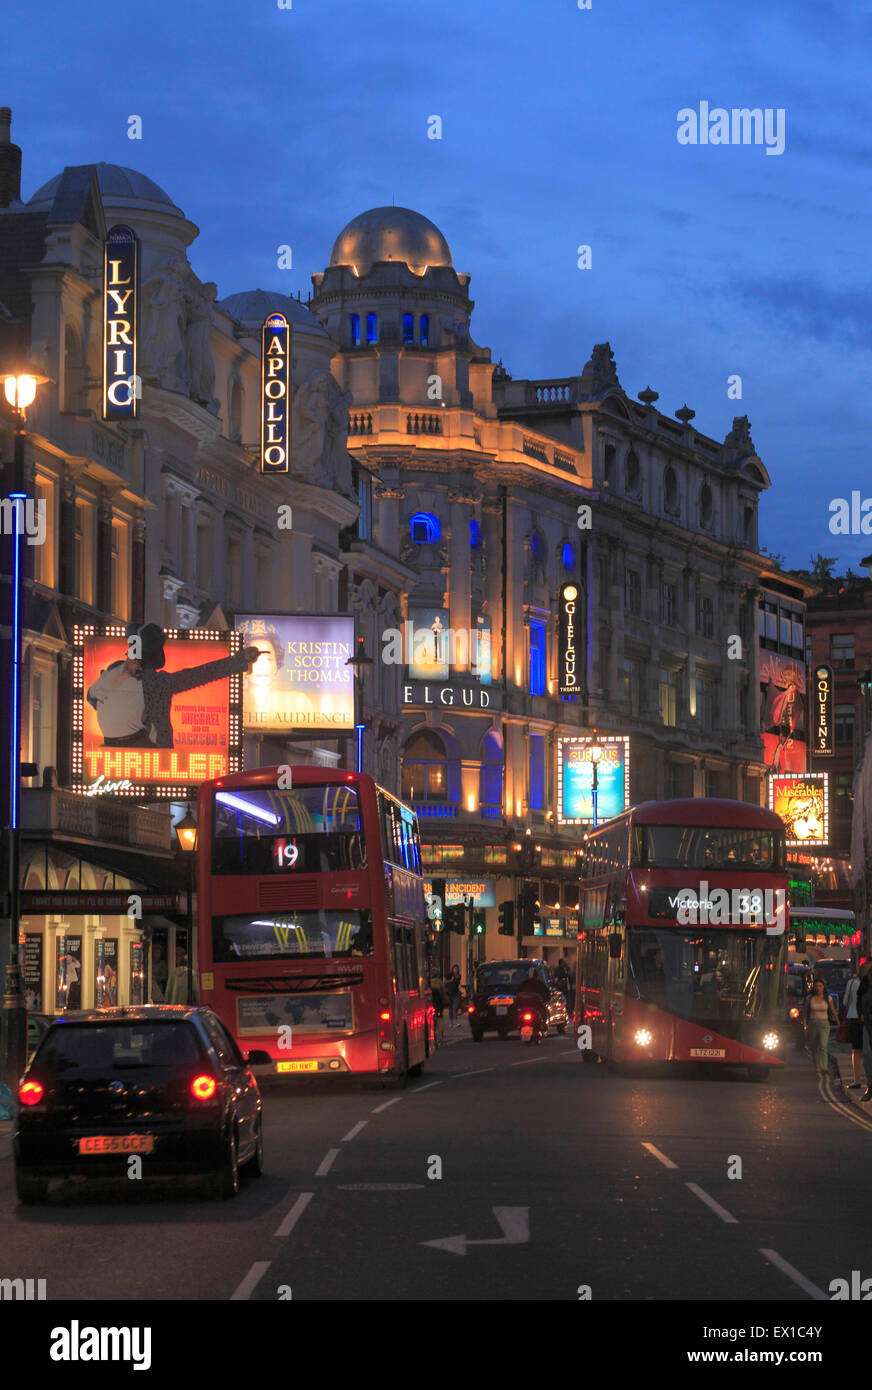 Shaftesbury Avenue Theatres in Londons West End. - Stock Image